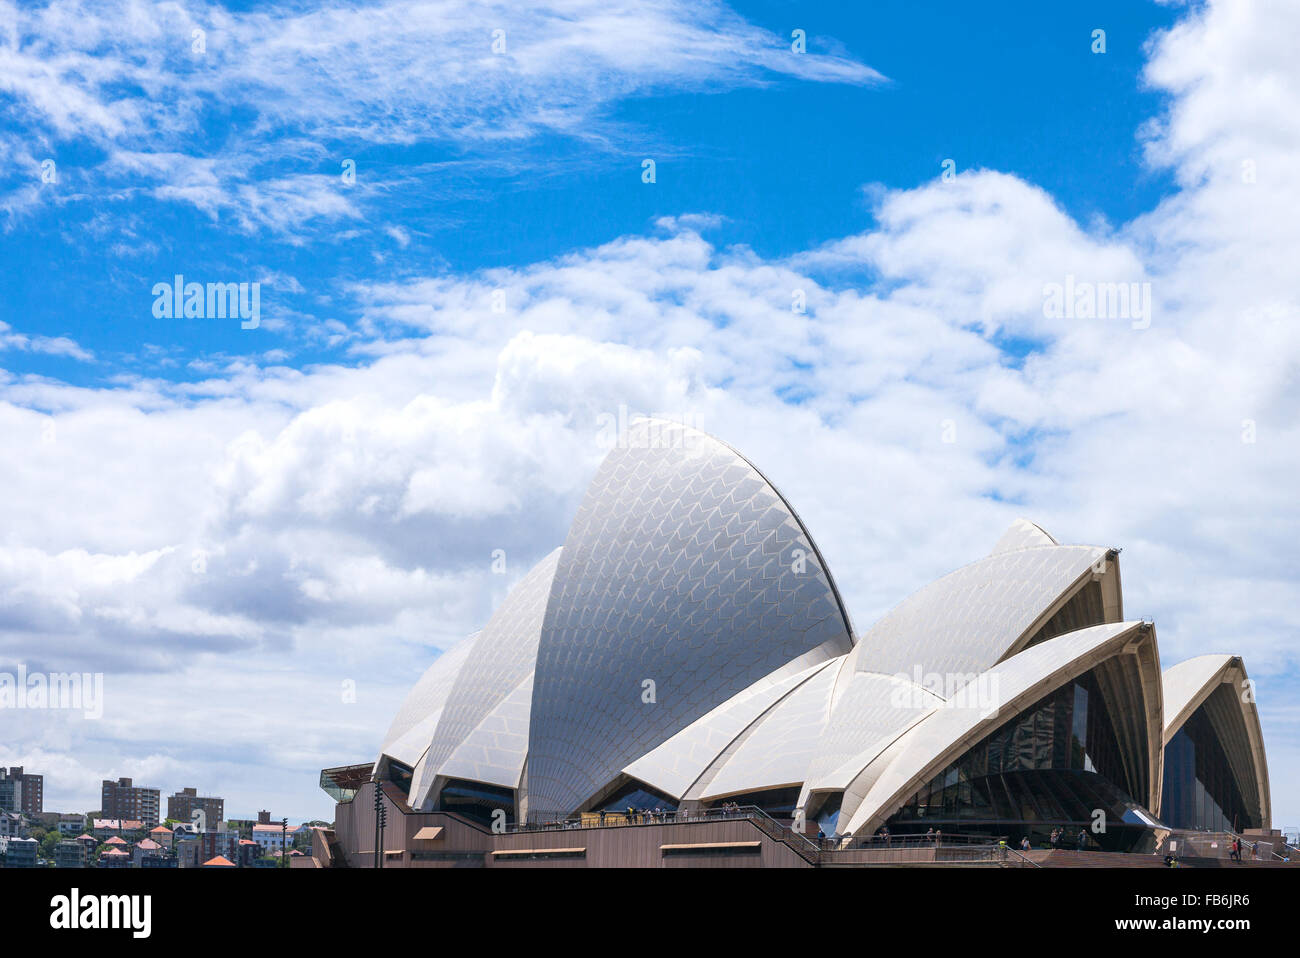 Australia, Sydney, view of the architectures of the Opera House - Stock Image